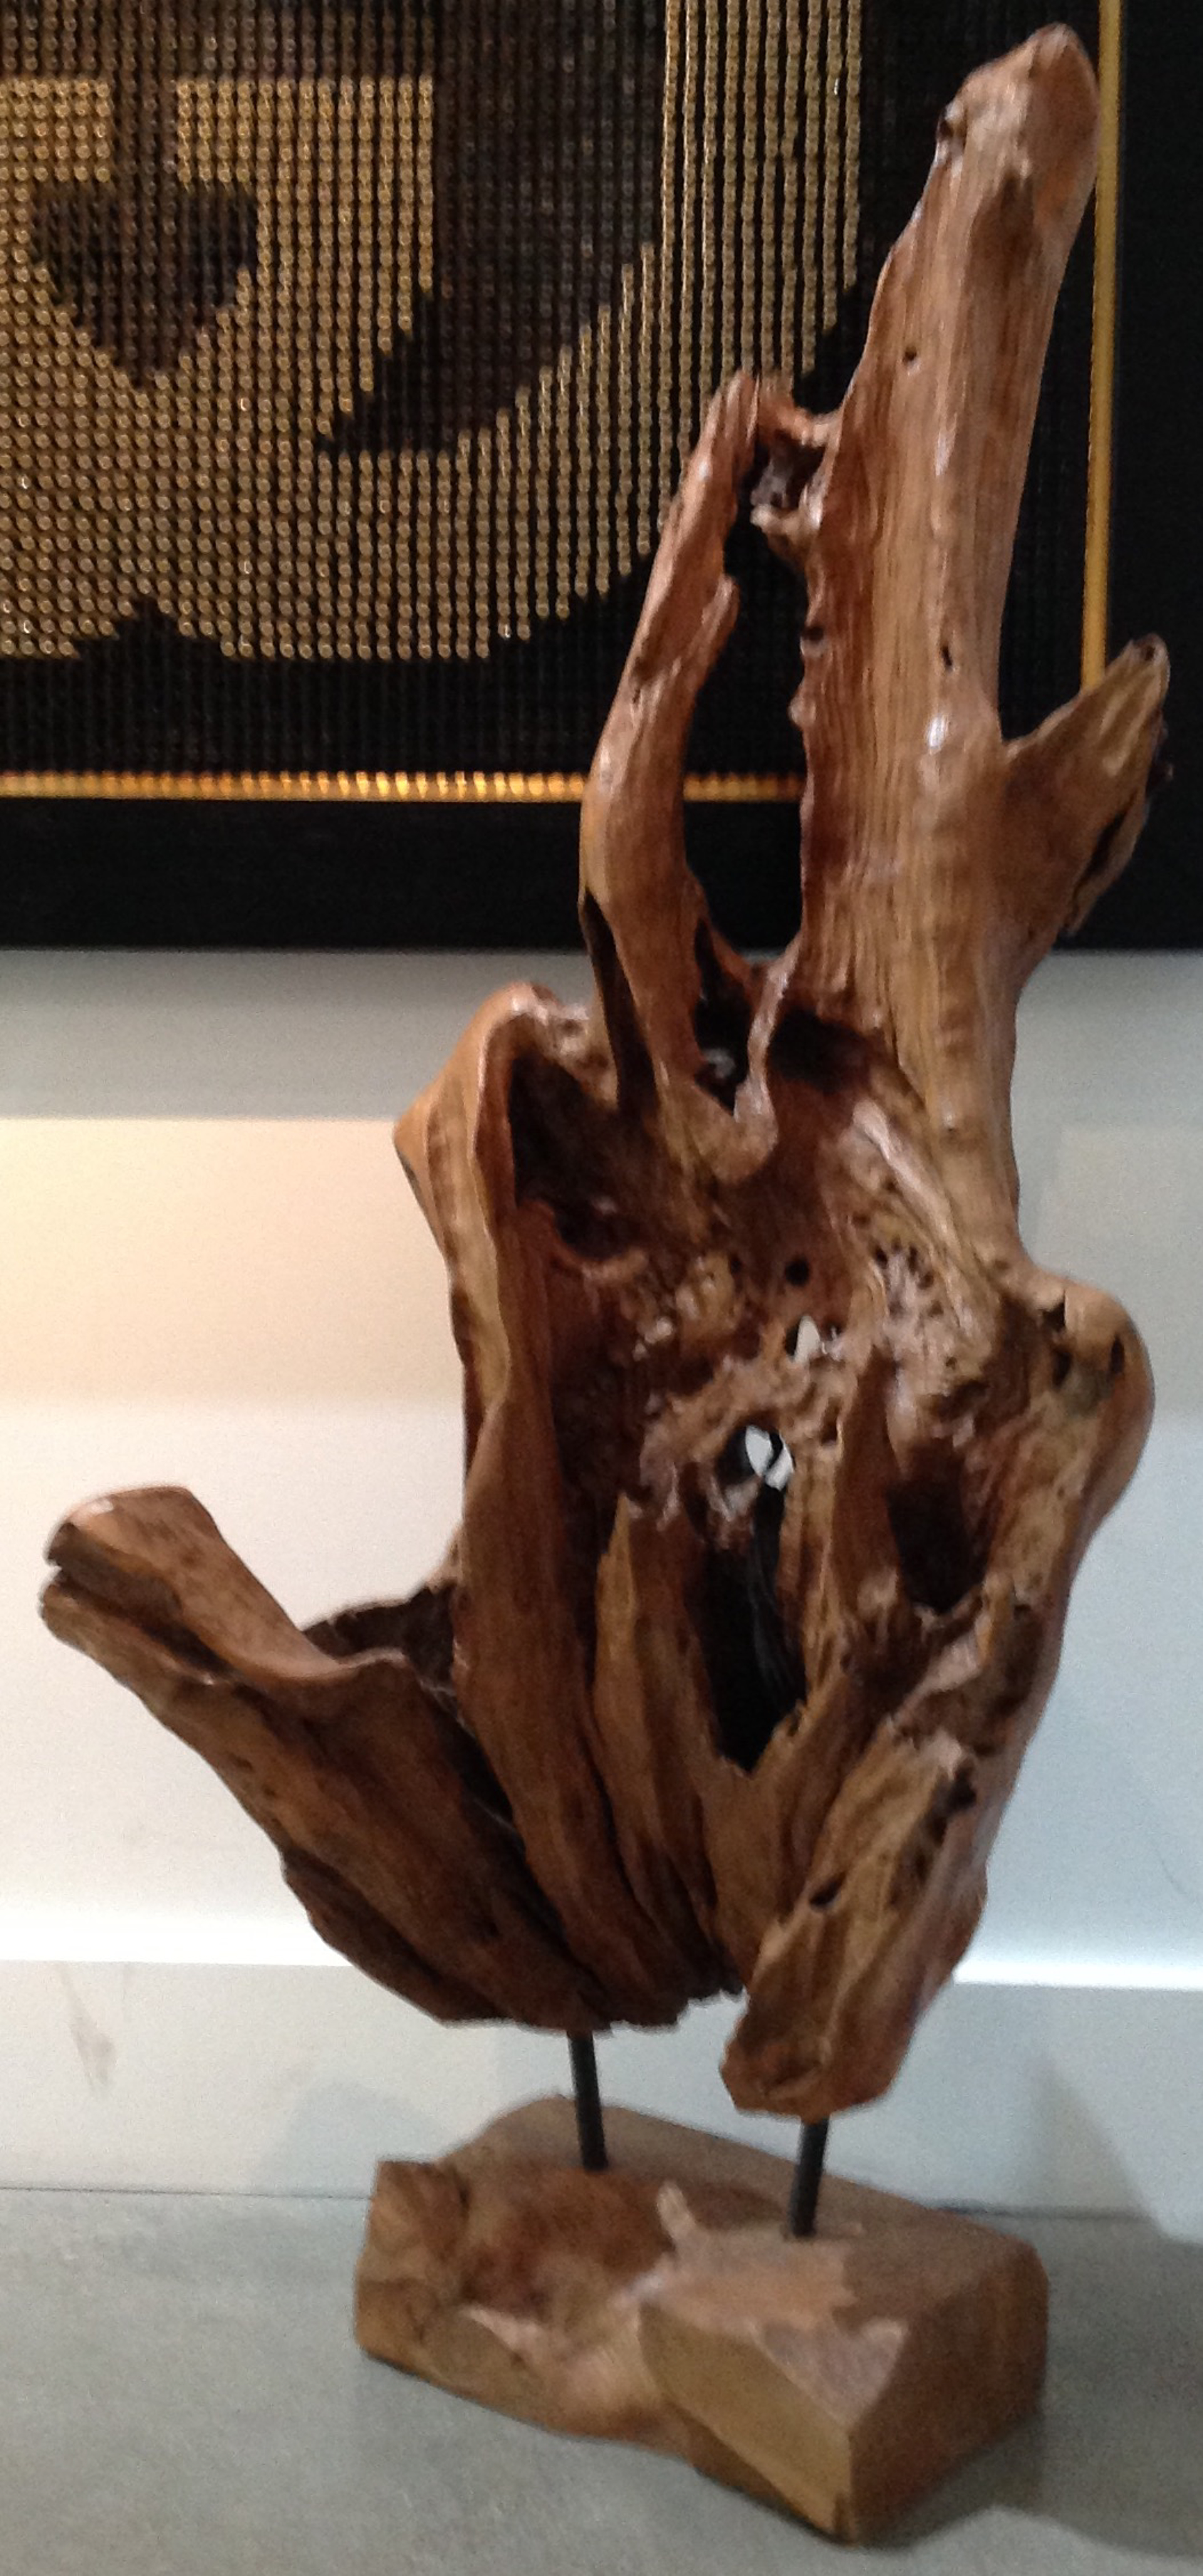 Teakwood Sculpture by I Made